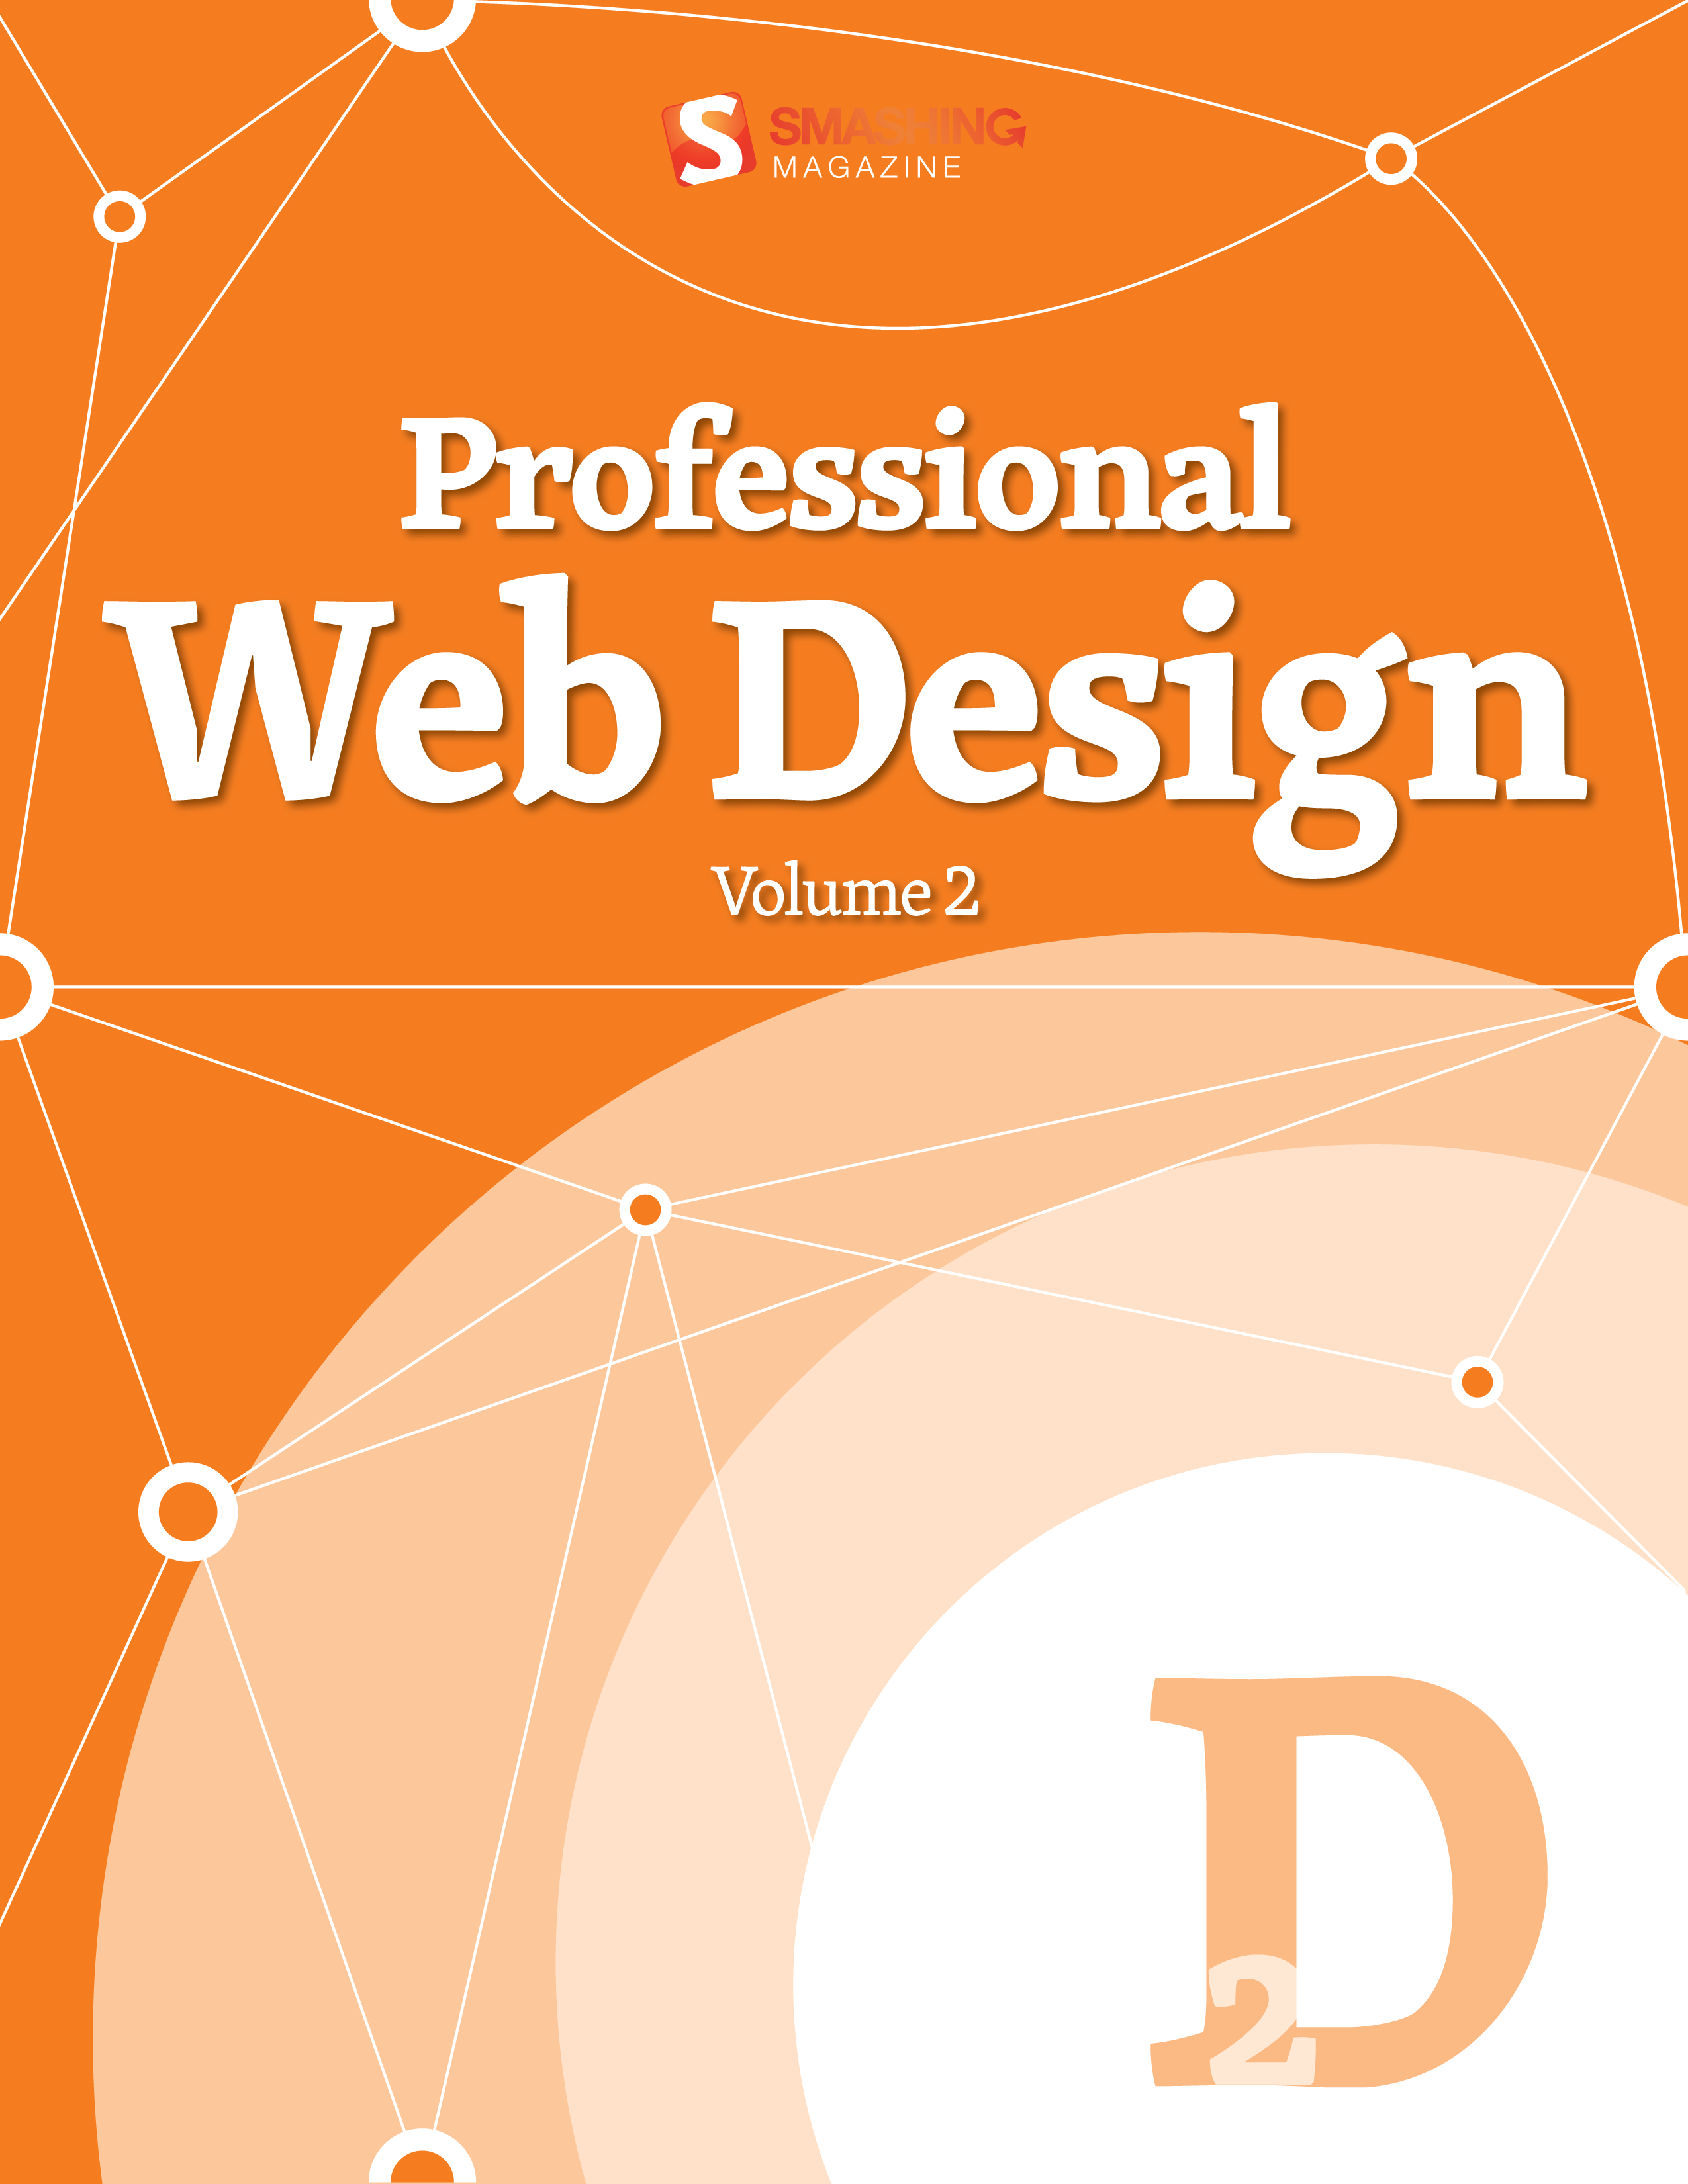 Professional Web Design By: Smashing Magazine